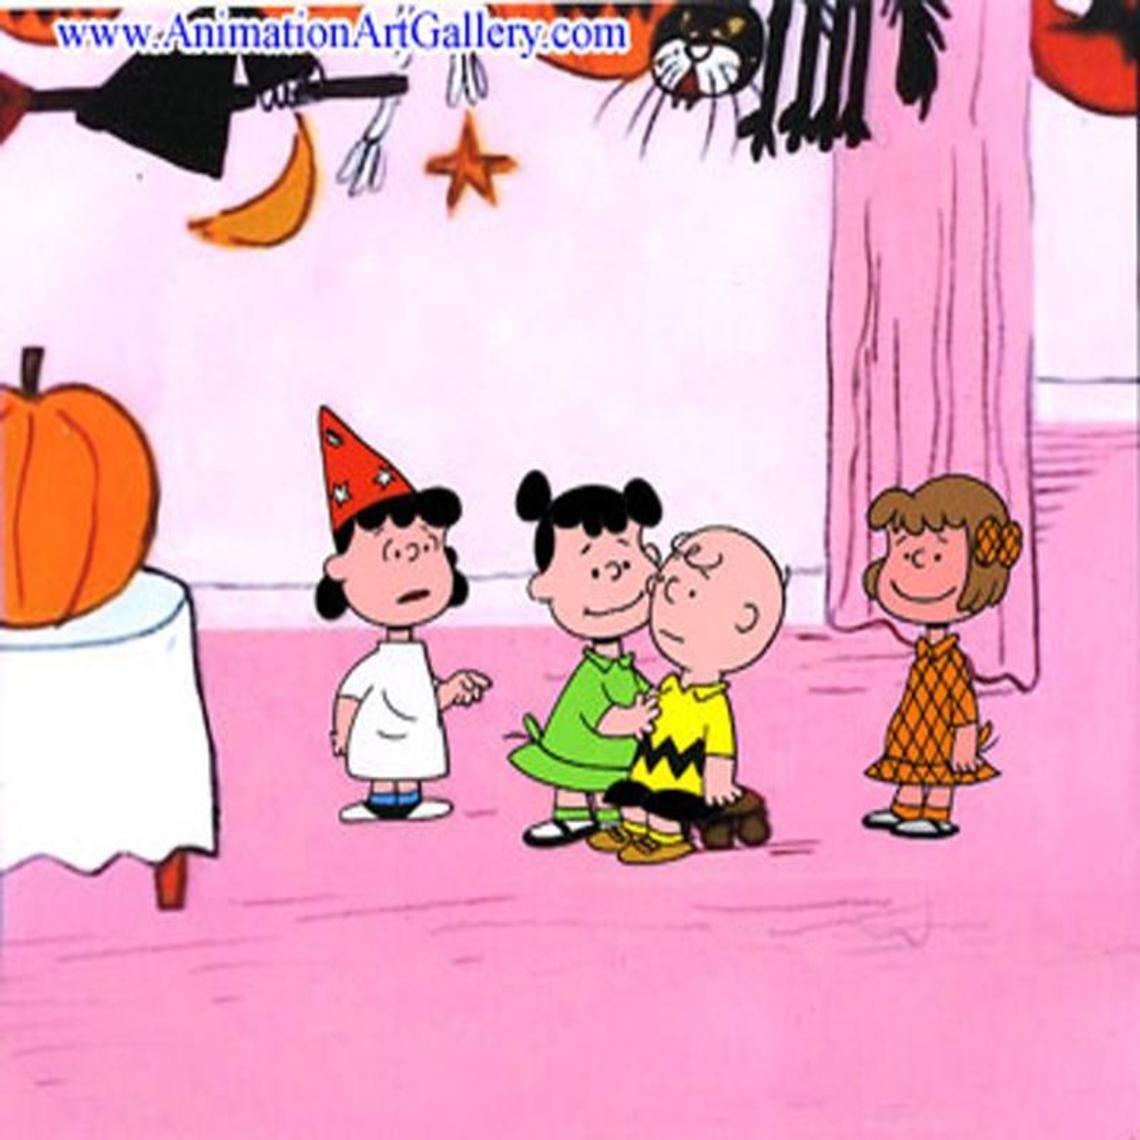 charlie brown halloween party | wallpaper | Pinterest | Charlie ...